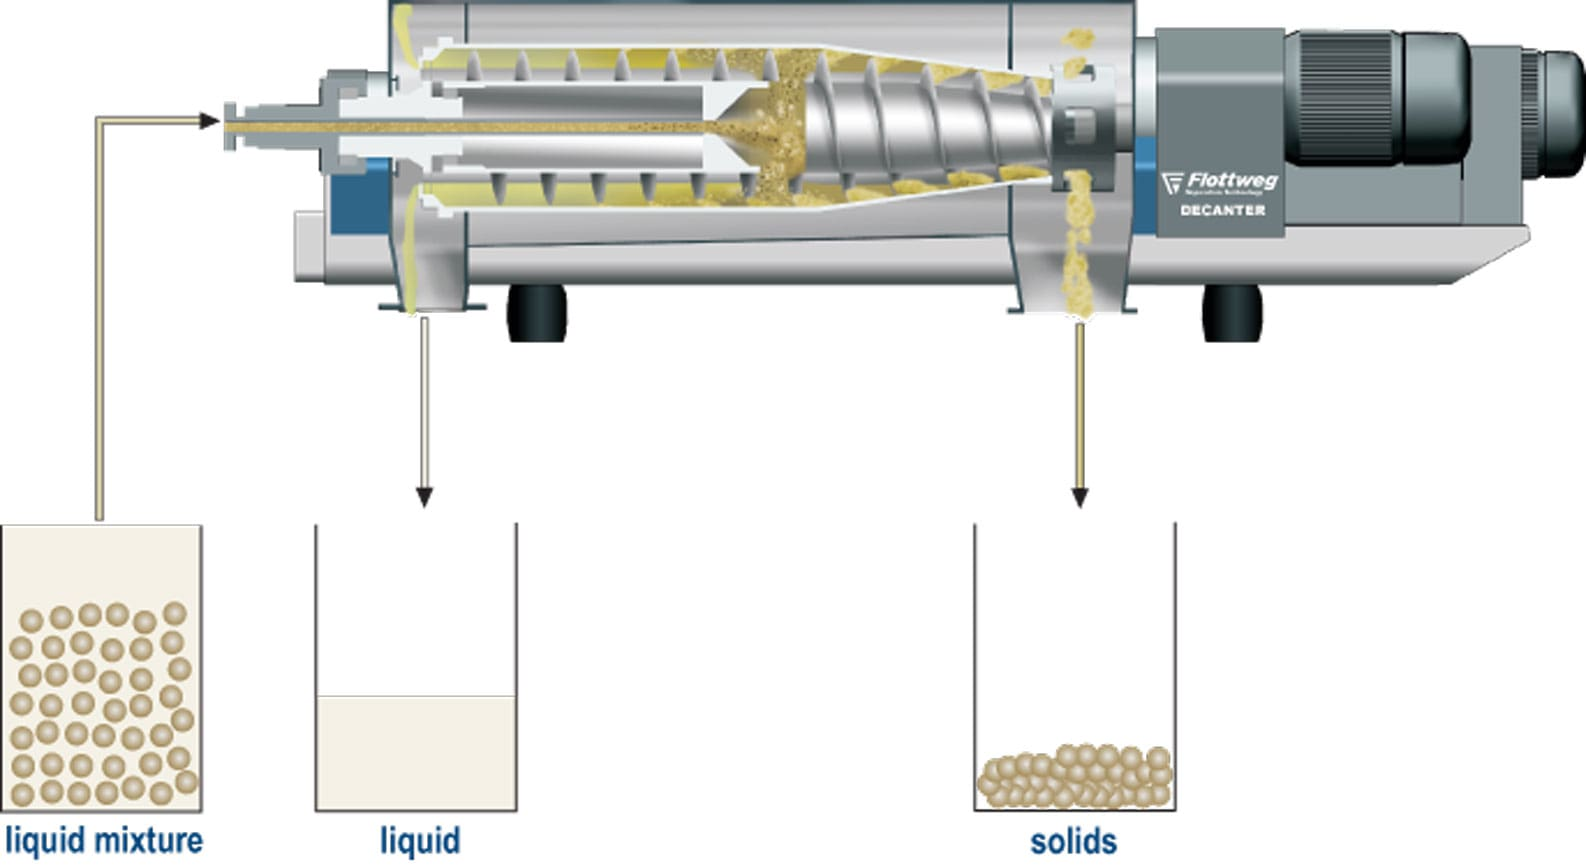 Tapioca starch extraction with industrial centrifuges